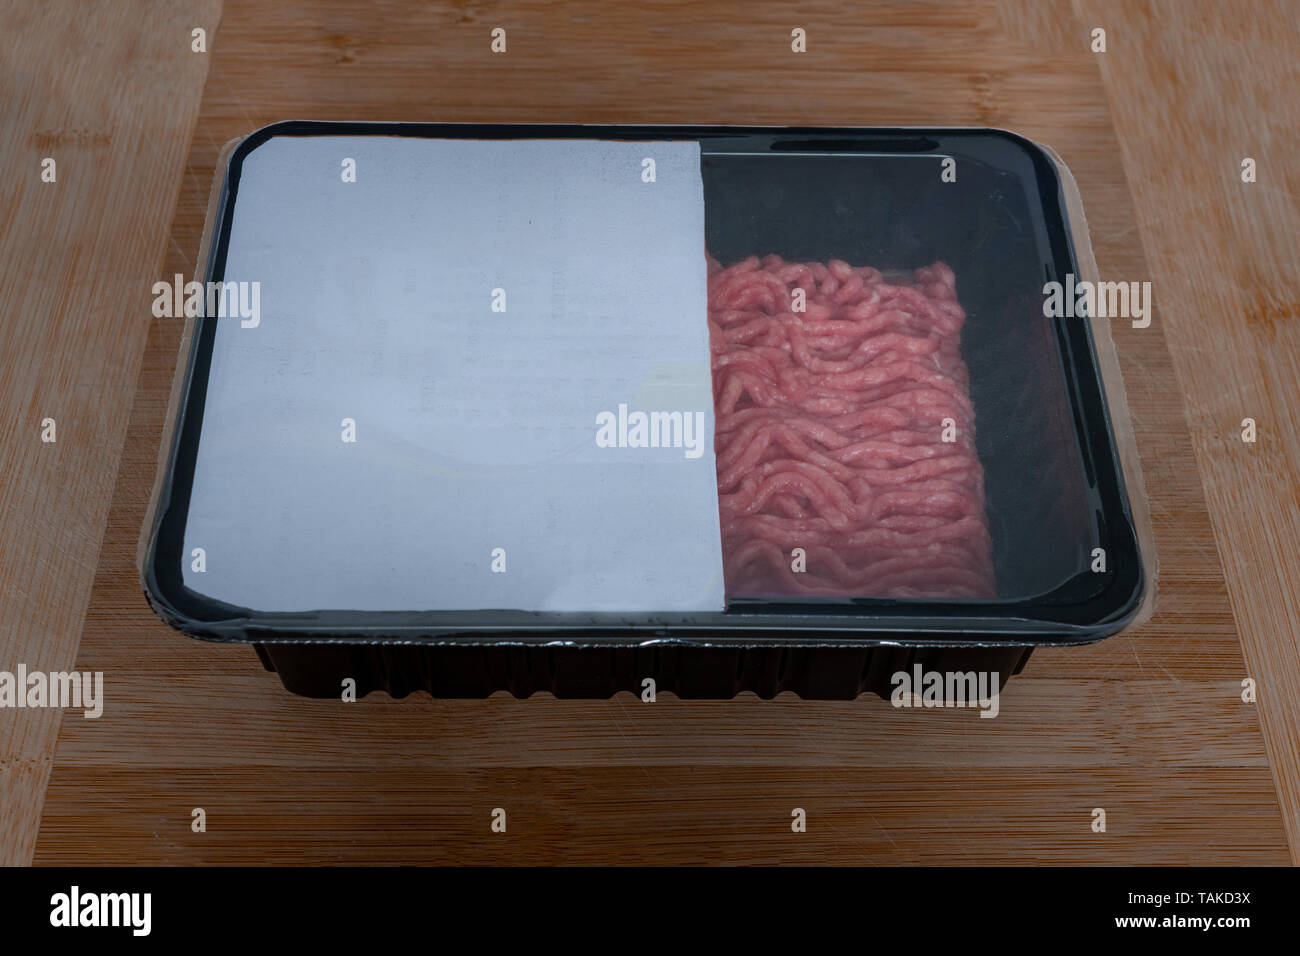 Minced meat in plastic pack with barcode, packed food wooden background - Stock Image